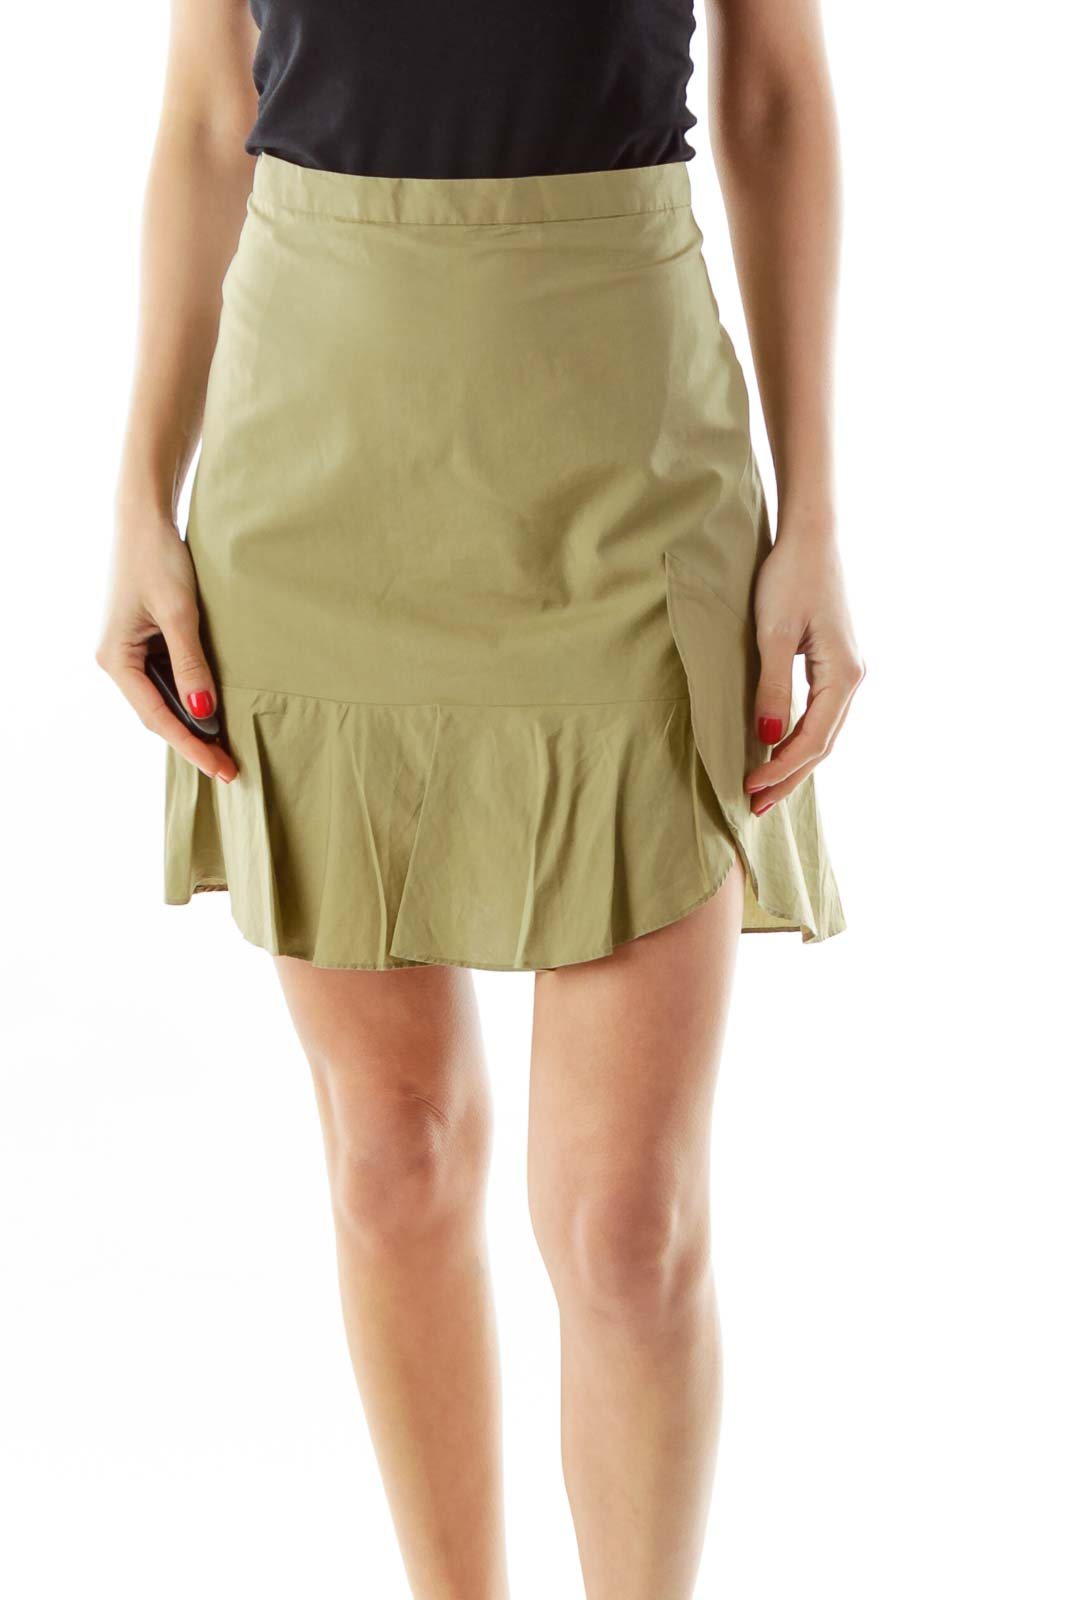 Green A-Line Mini Skirt